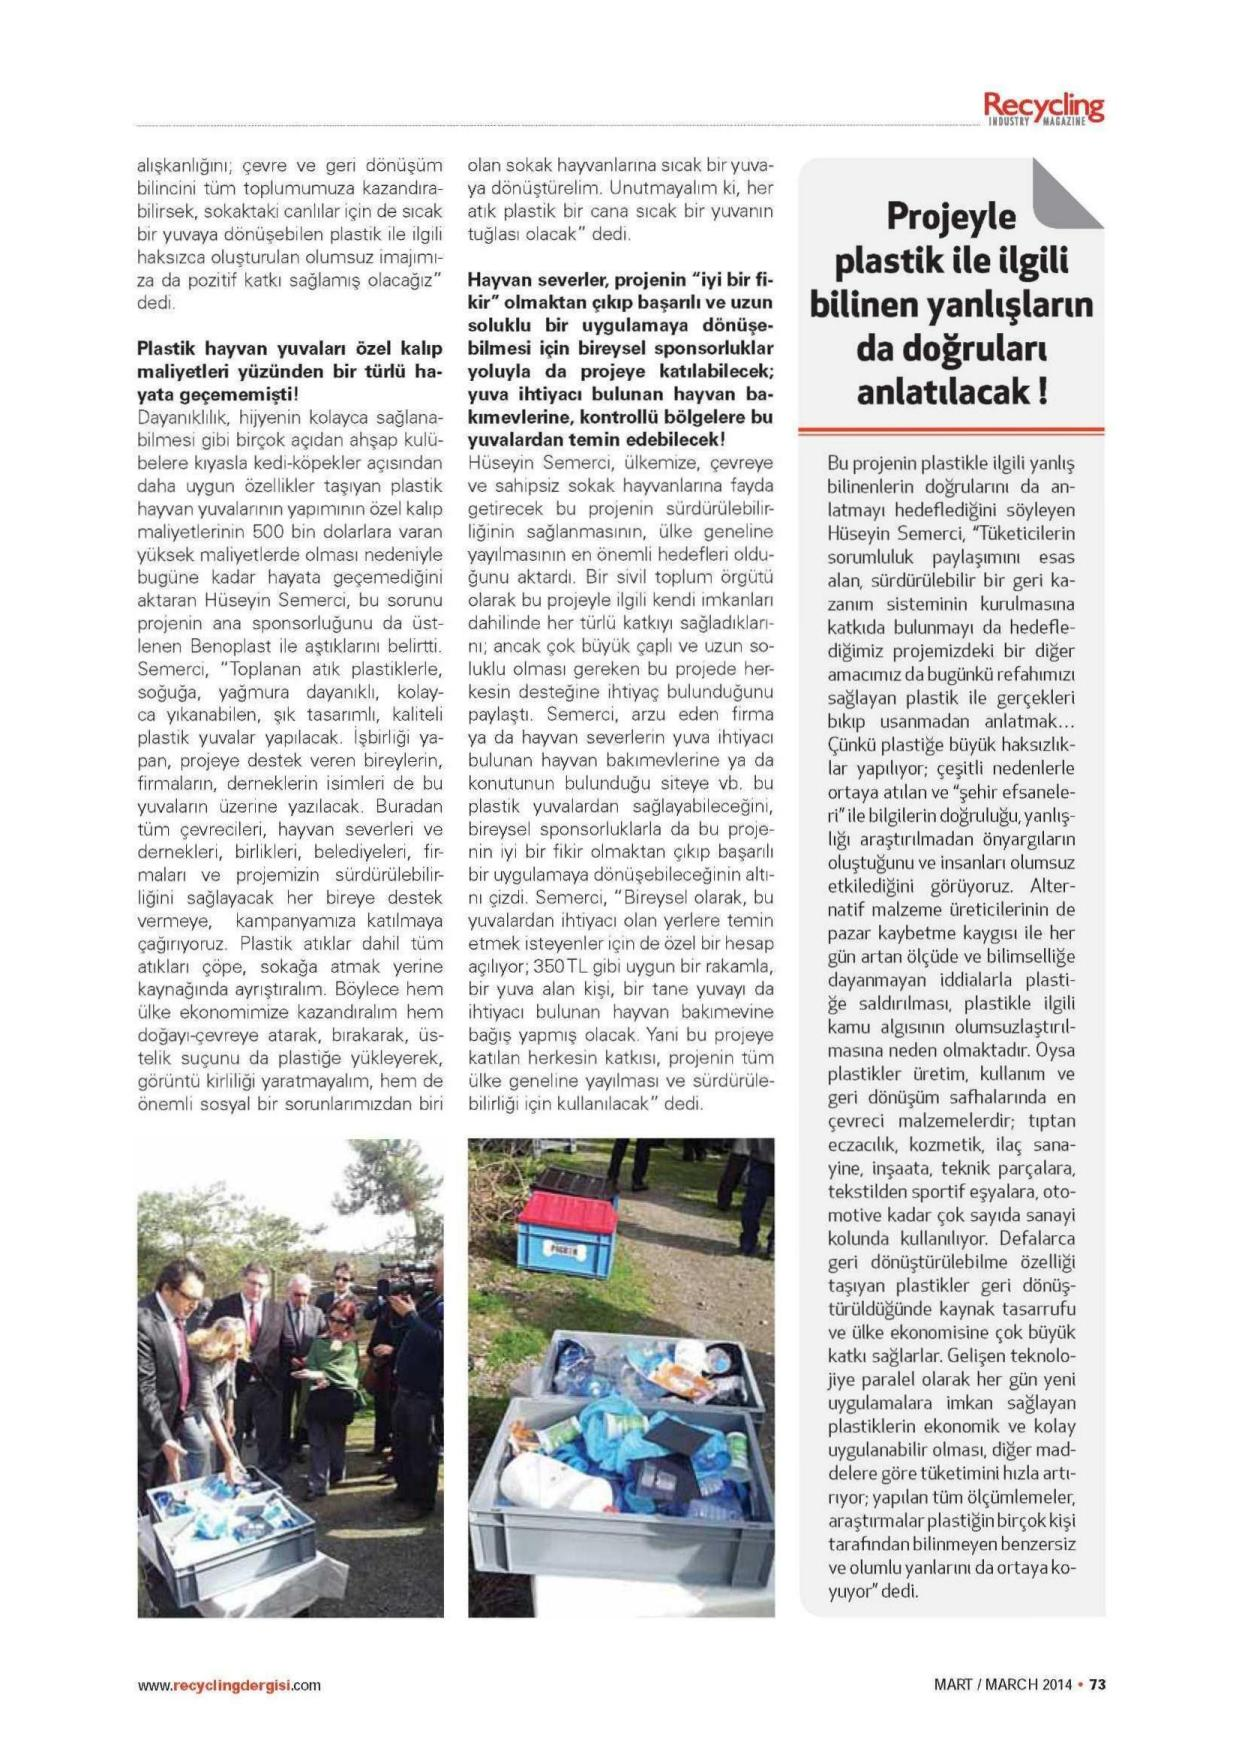 RECYCLING_INDUSTRY_MAGAZINE